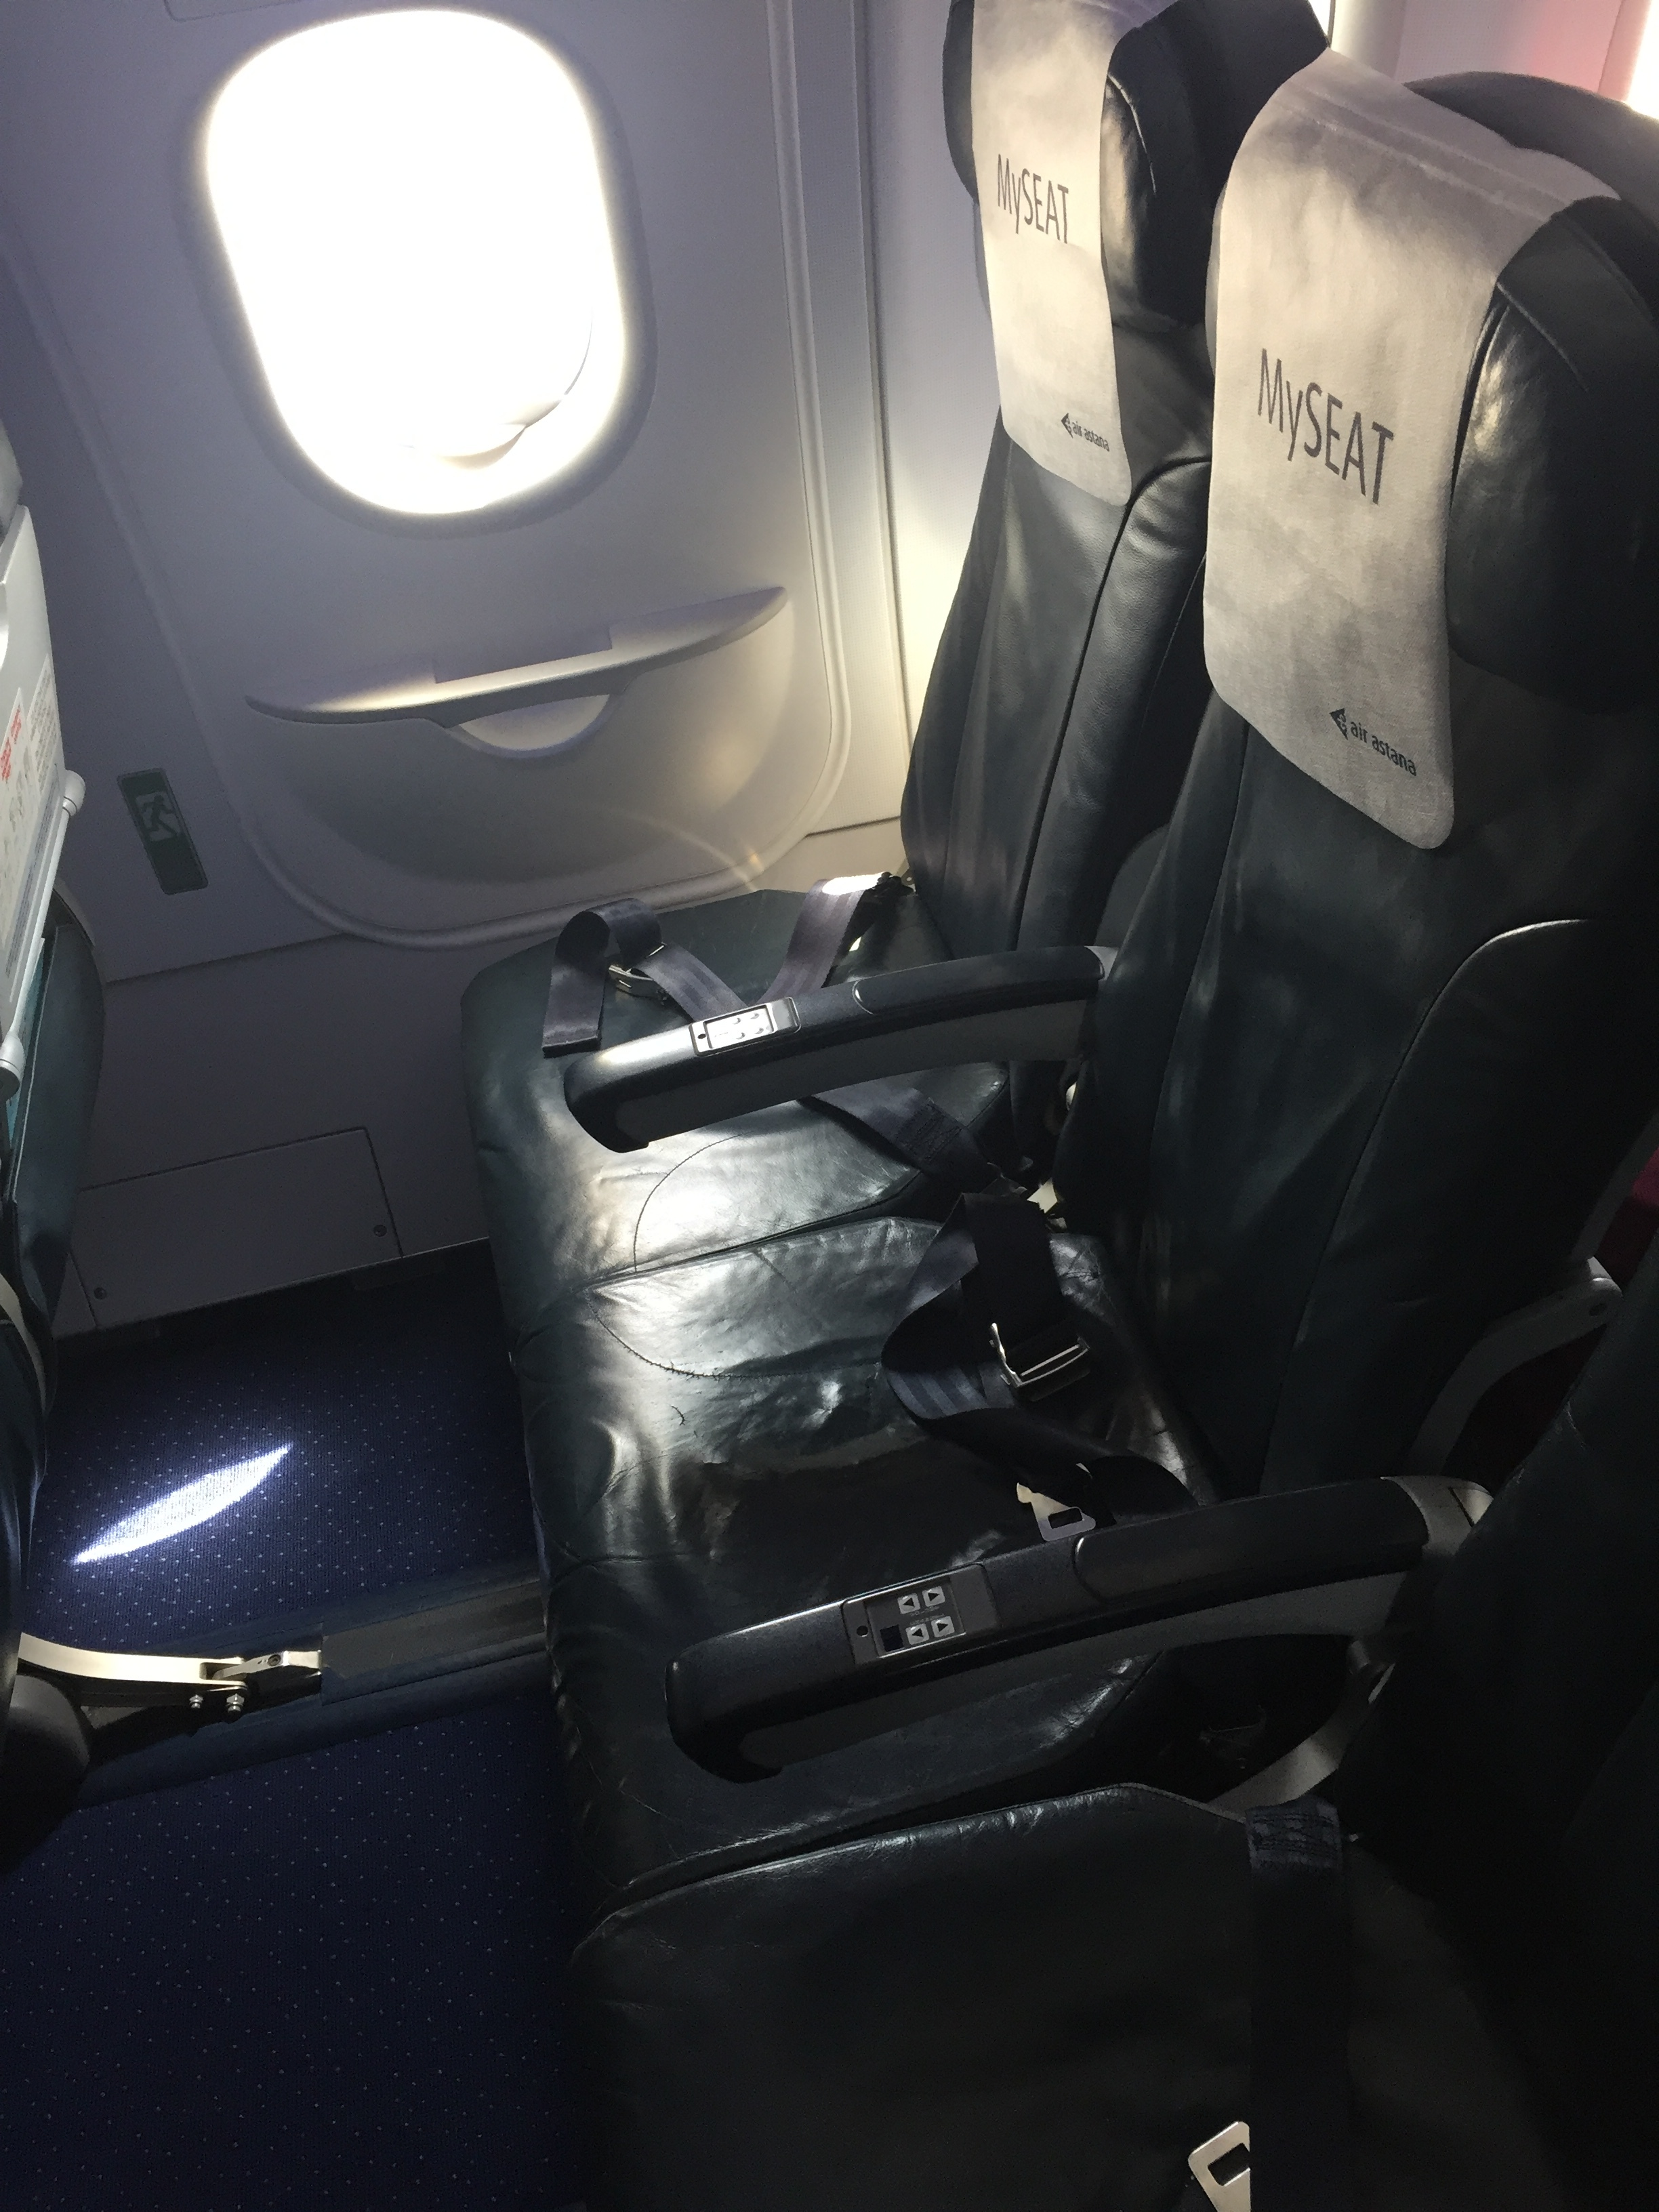 air astana myseat seats.JPG